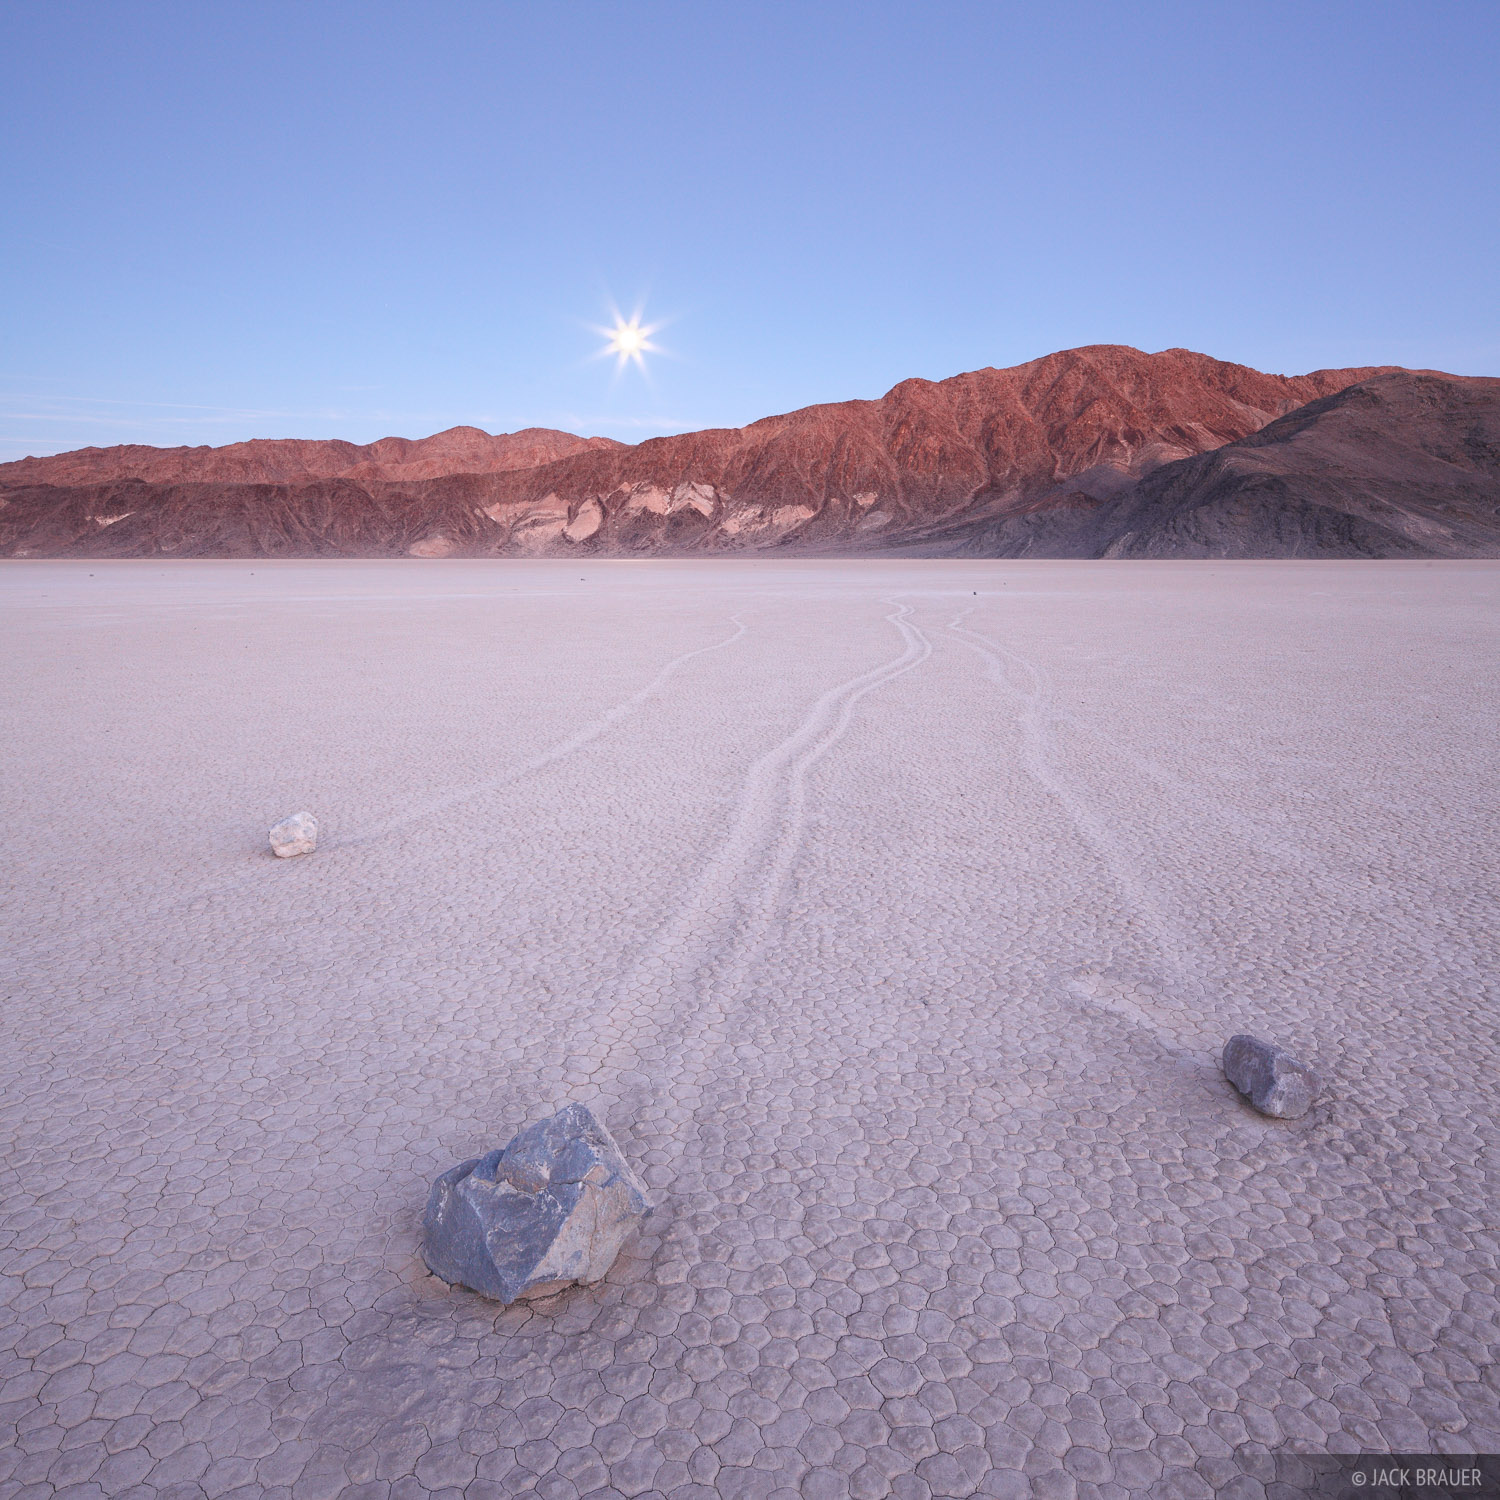 The Racetrack is a mysterious and fascinating location in Death Valley National Park - a flat dry lakebed playa in a remote desert...